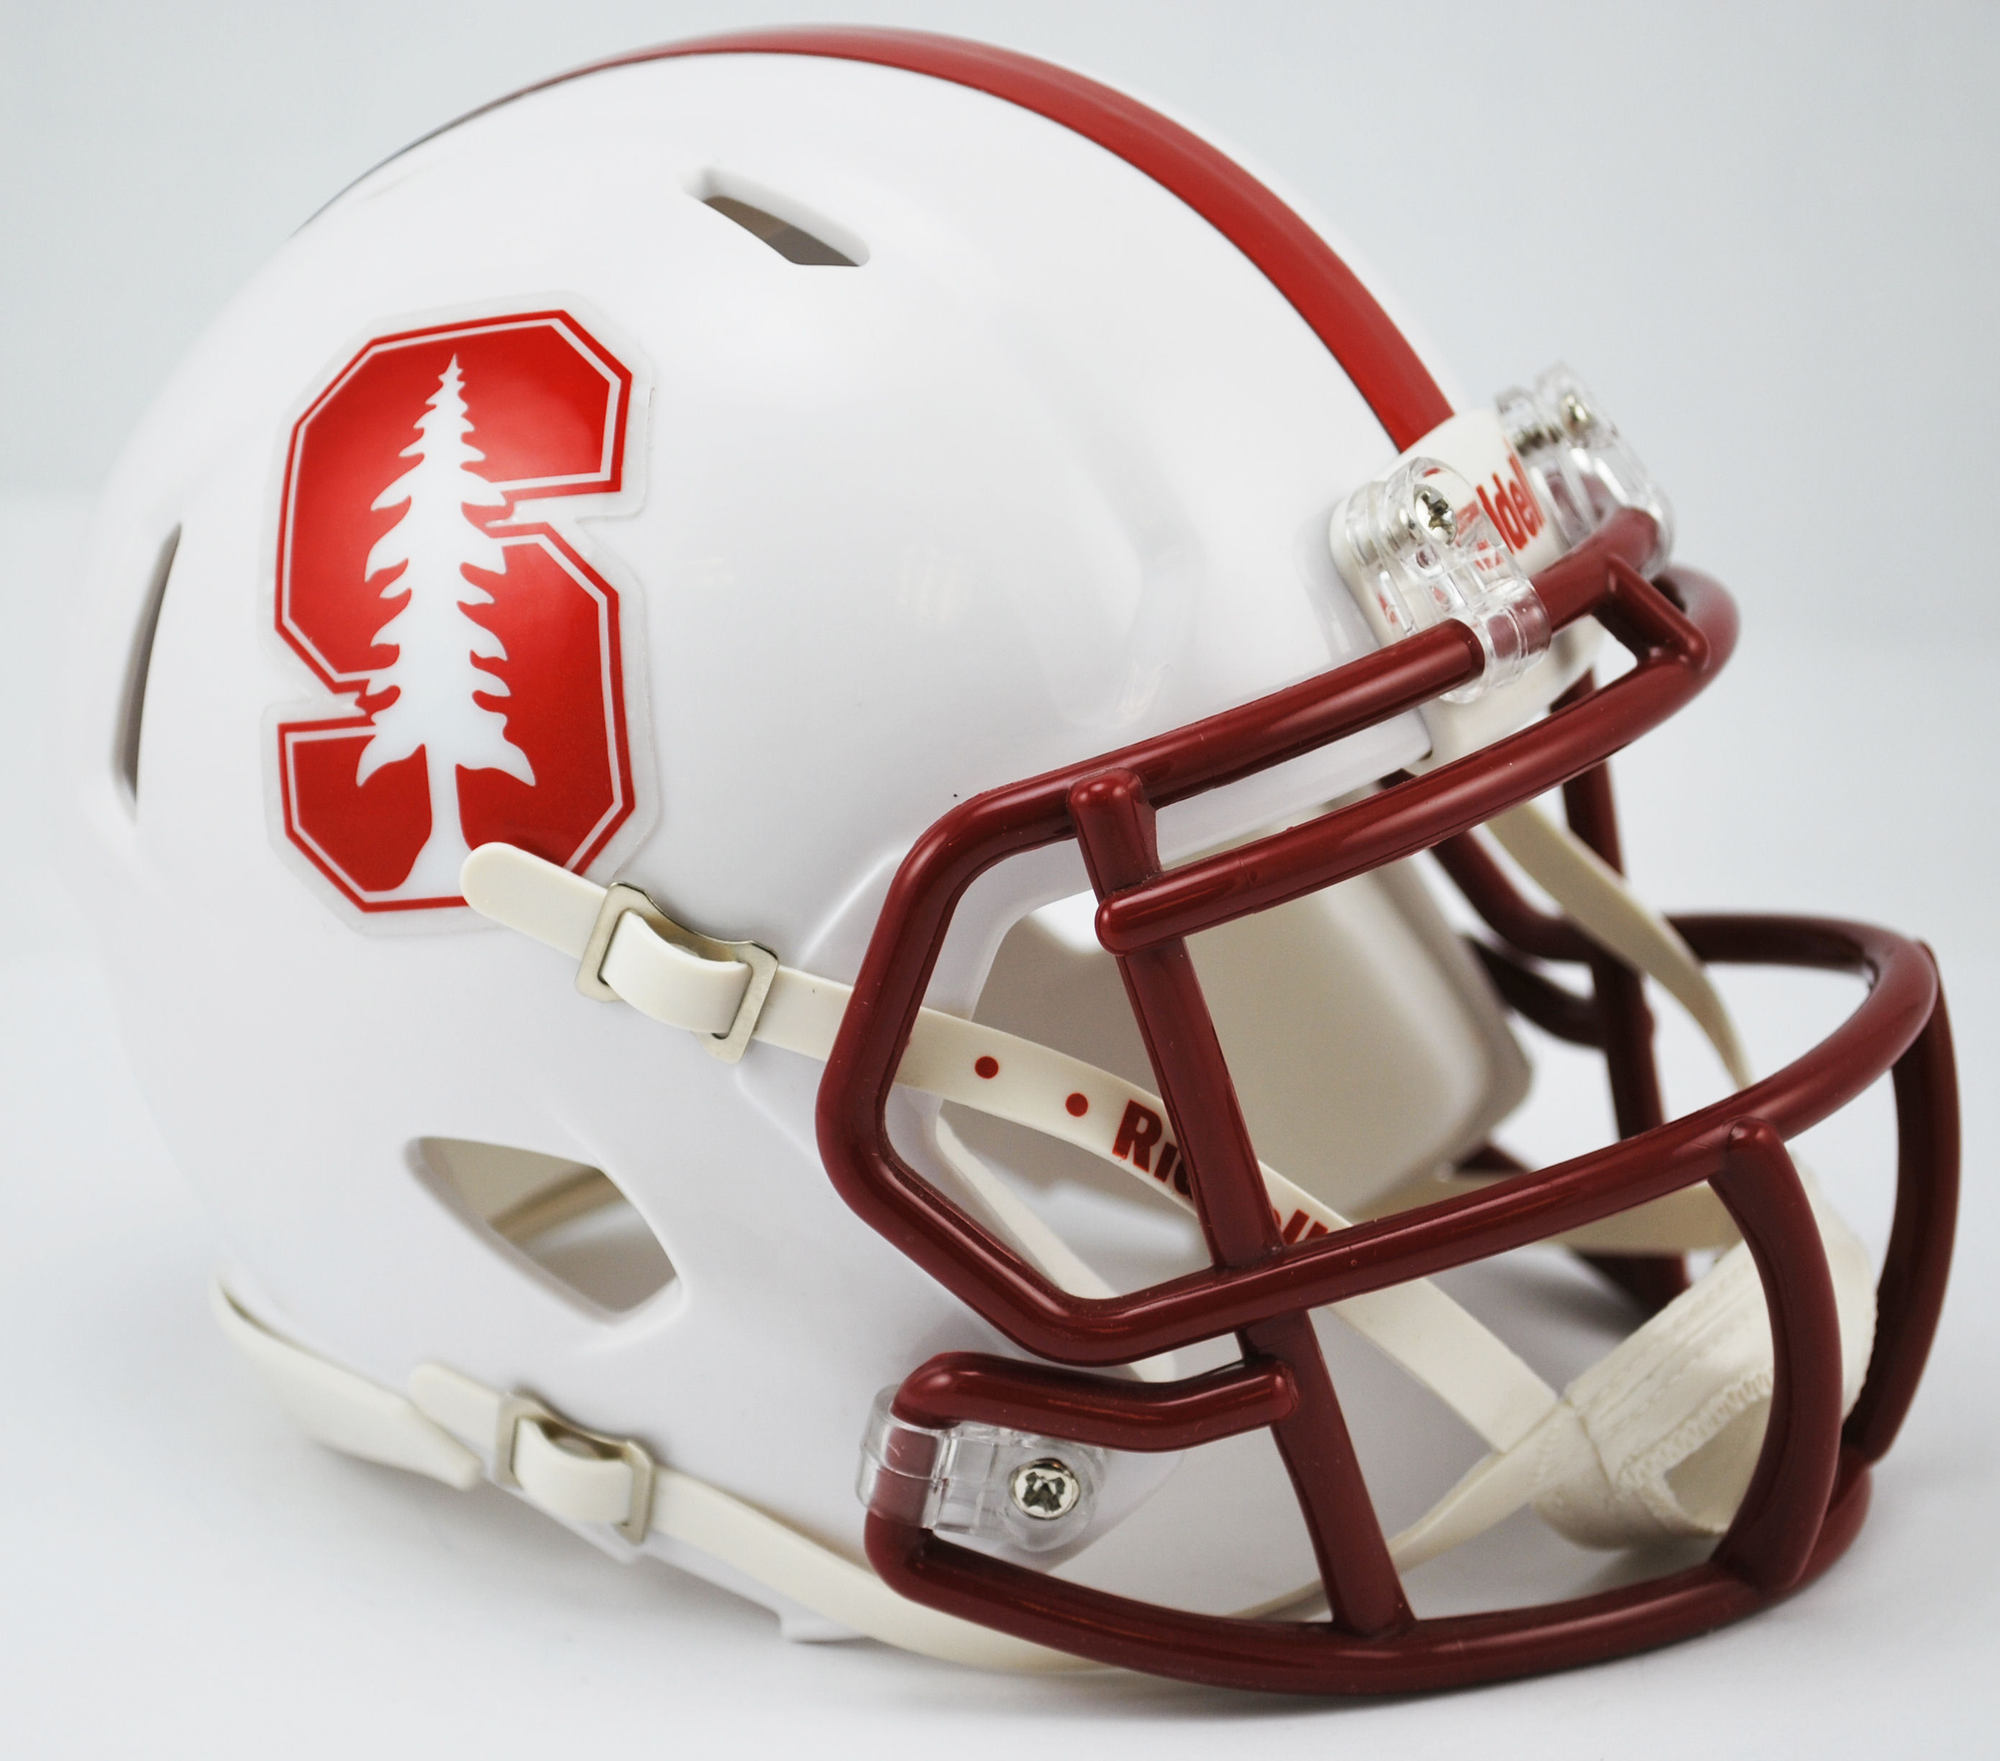 Stanford Cardinal NCAA Mini Speed Football Helmet B Chrome Decal NEW 2015 B PSM-Powers Sports Memorabilia